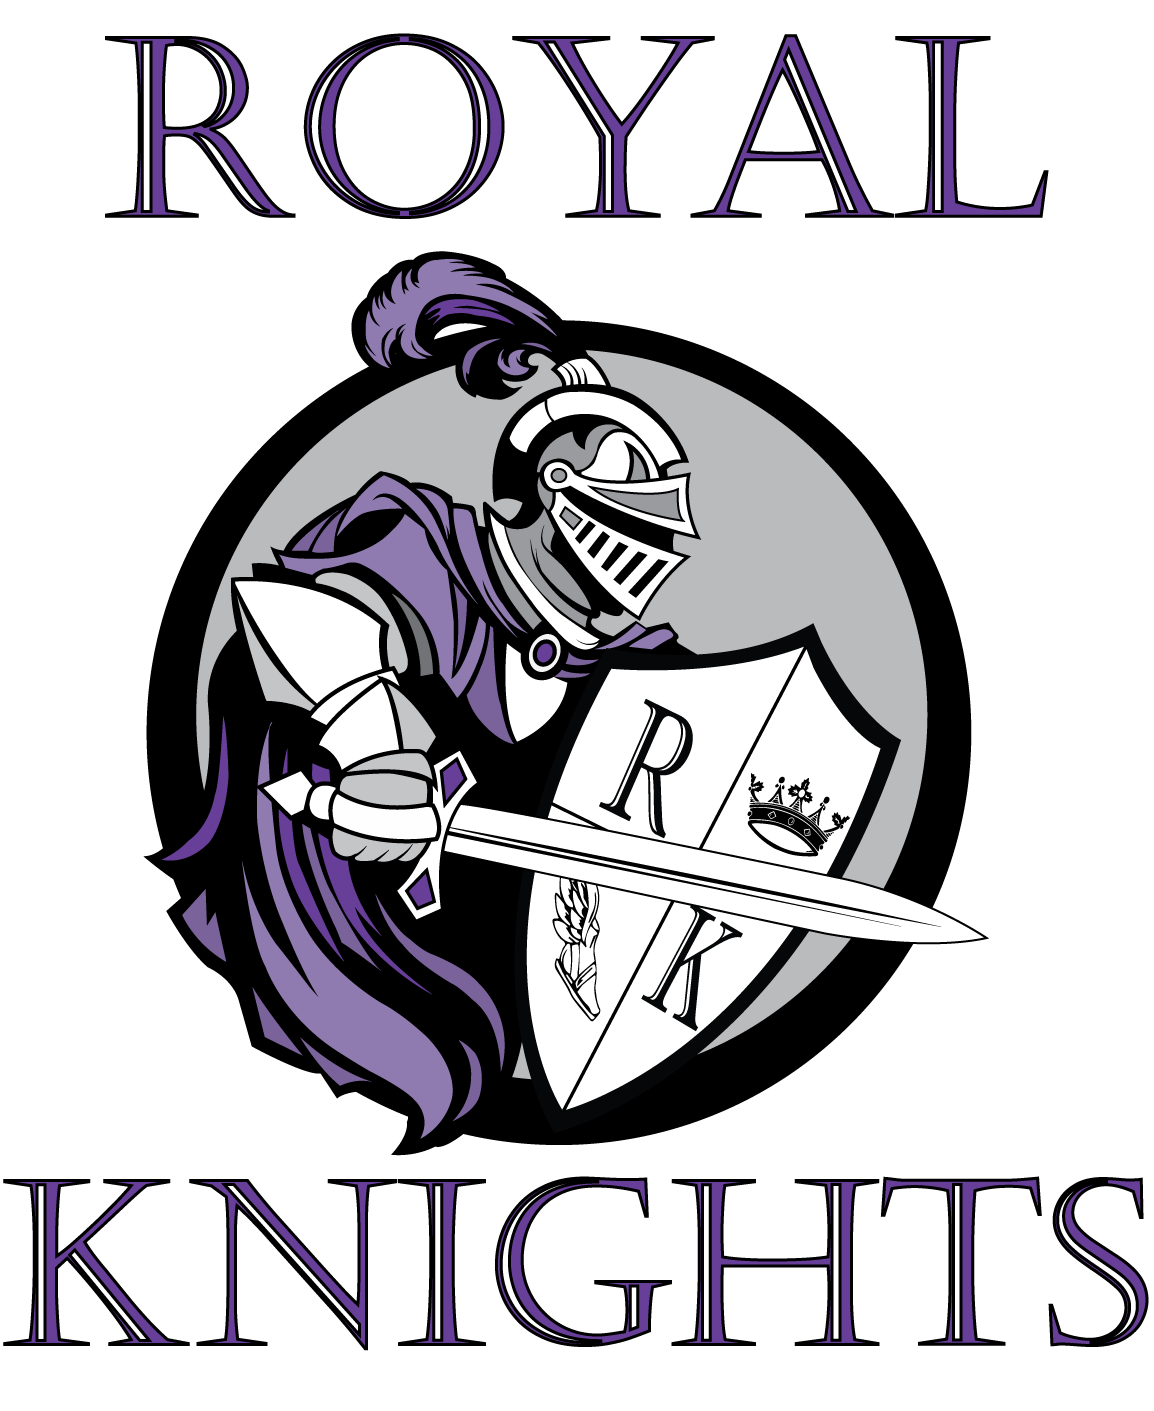 Royal Knights